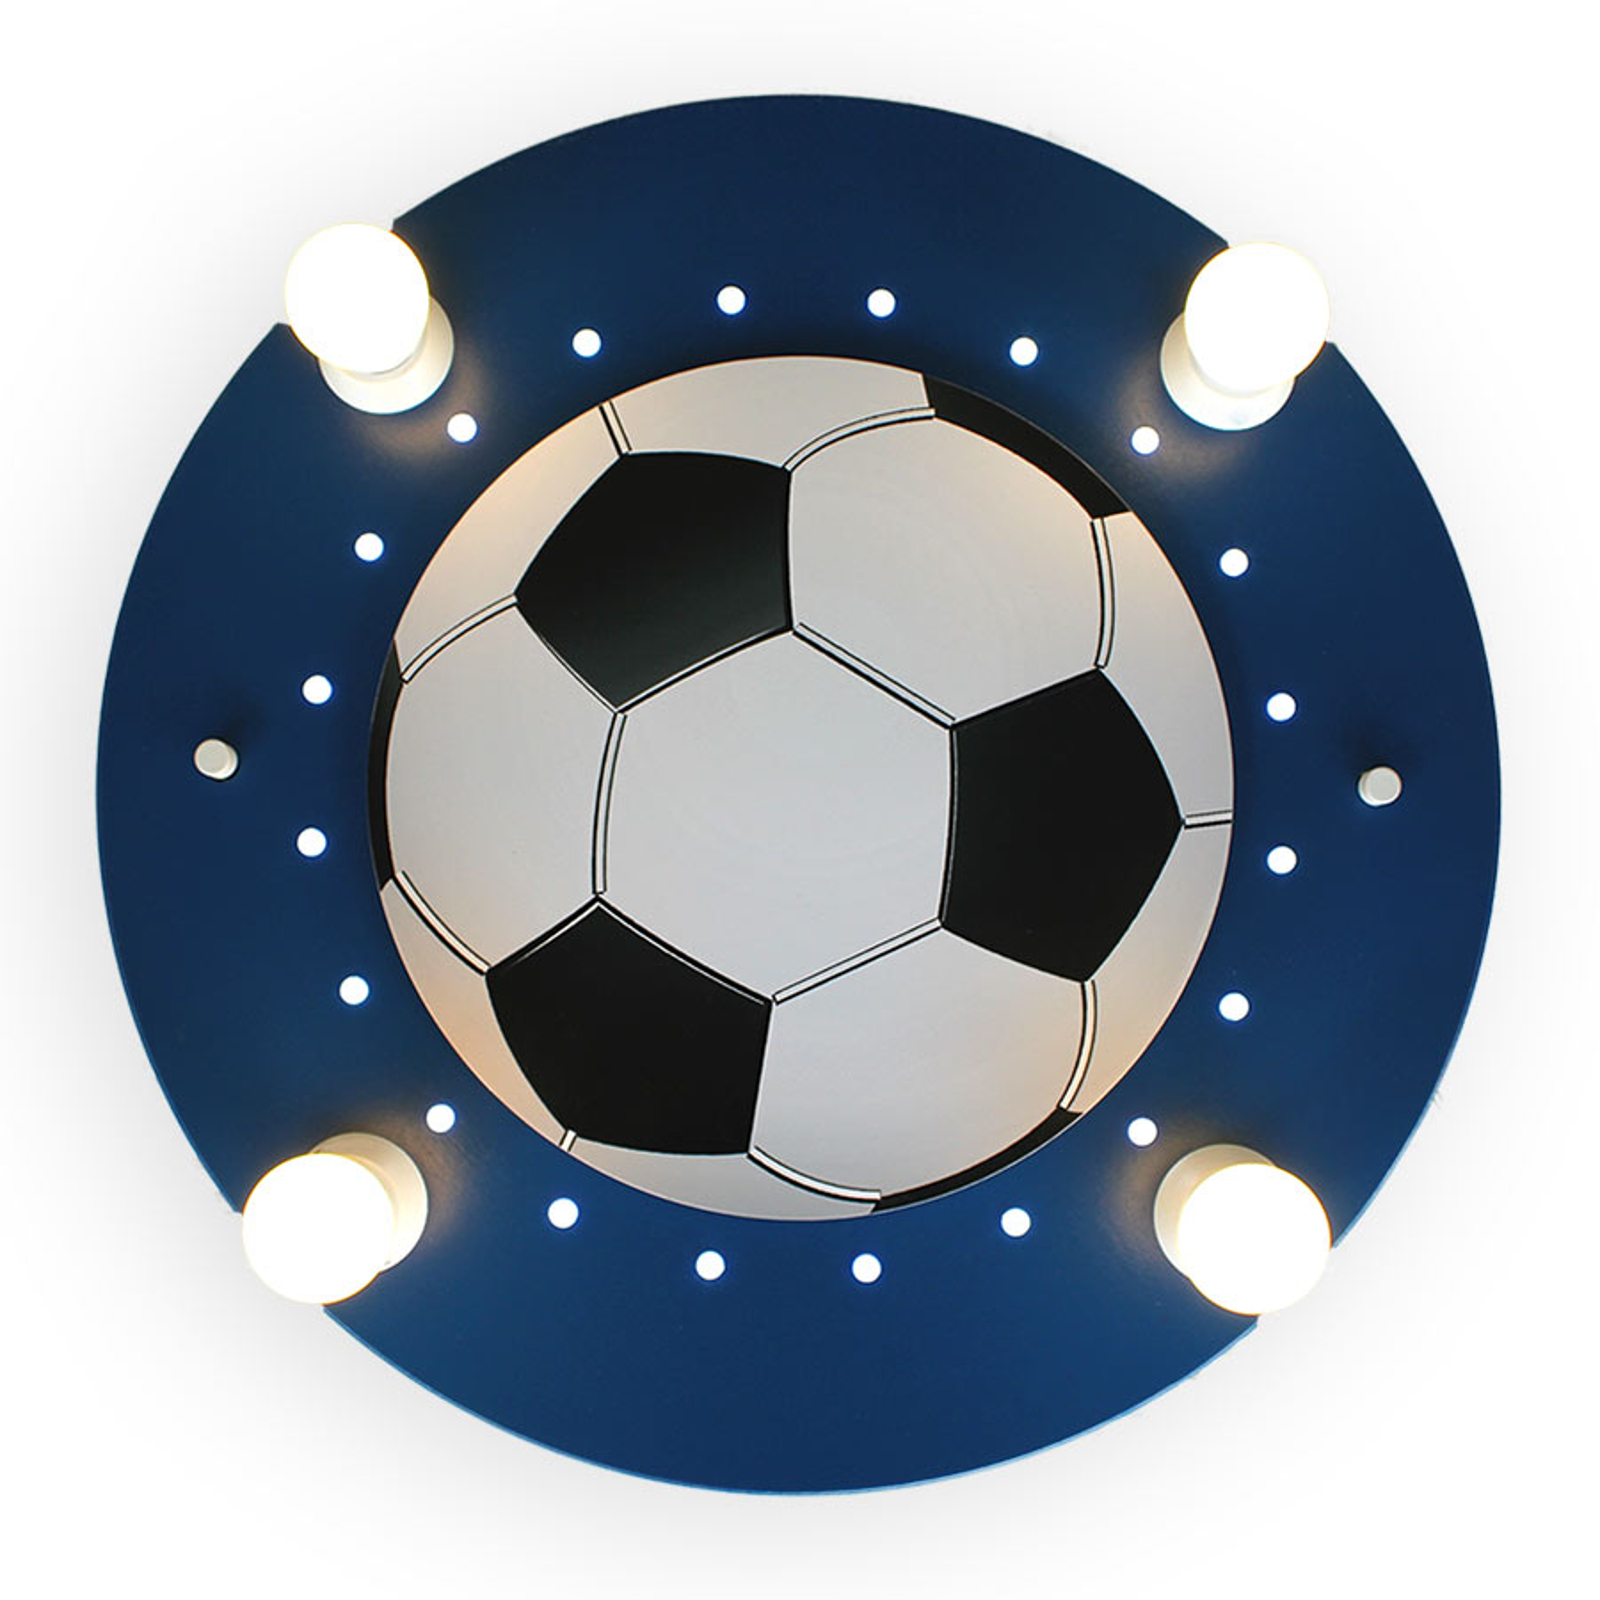 Plafondlamp Voetbal, 4-lamps donkerblauw-wit